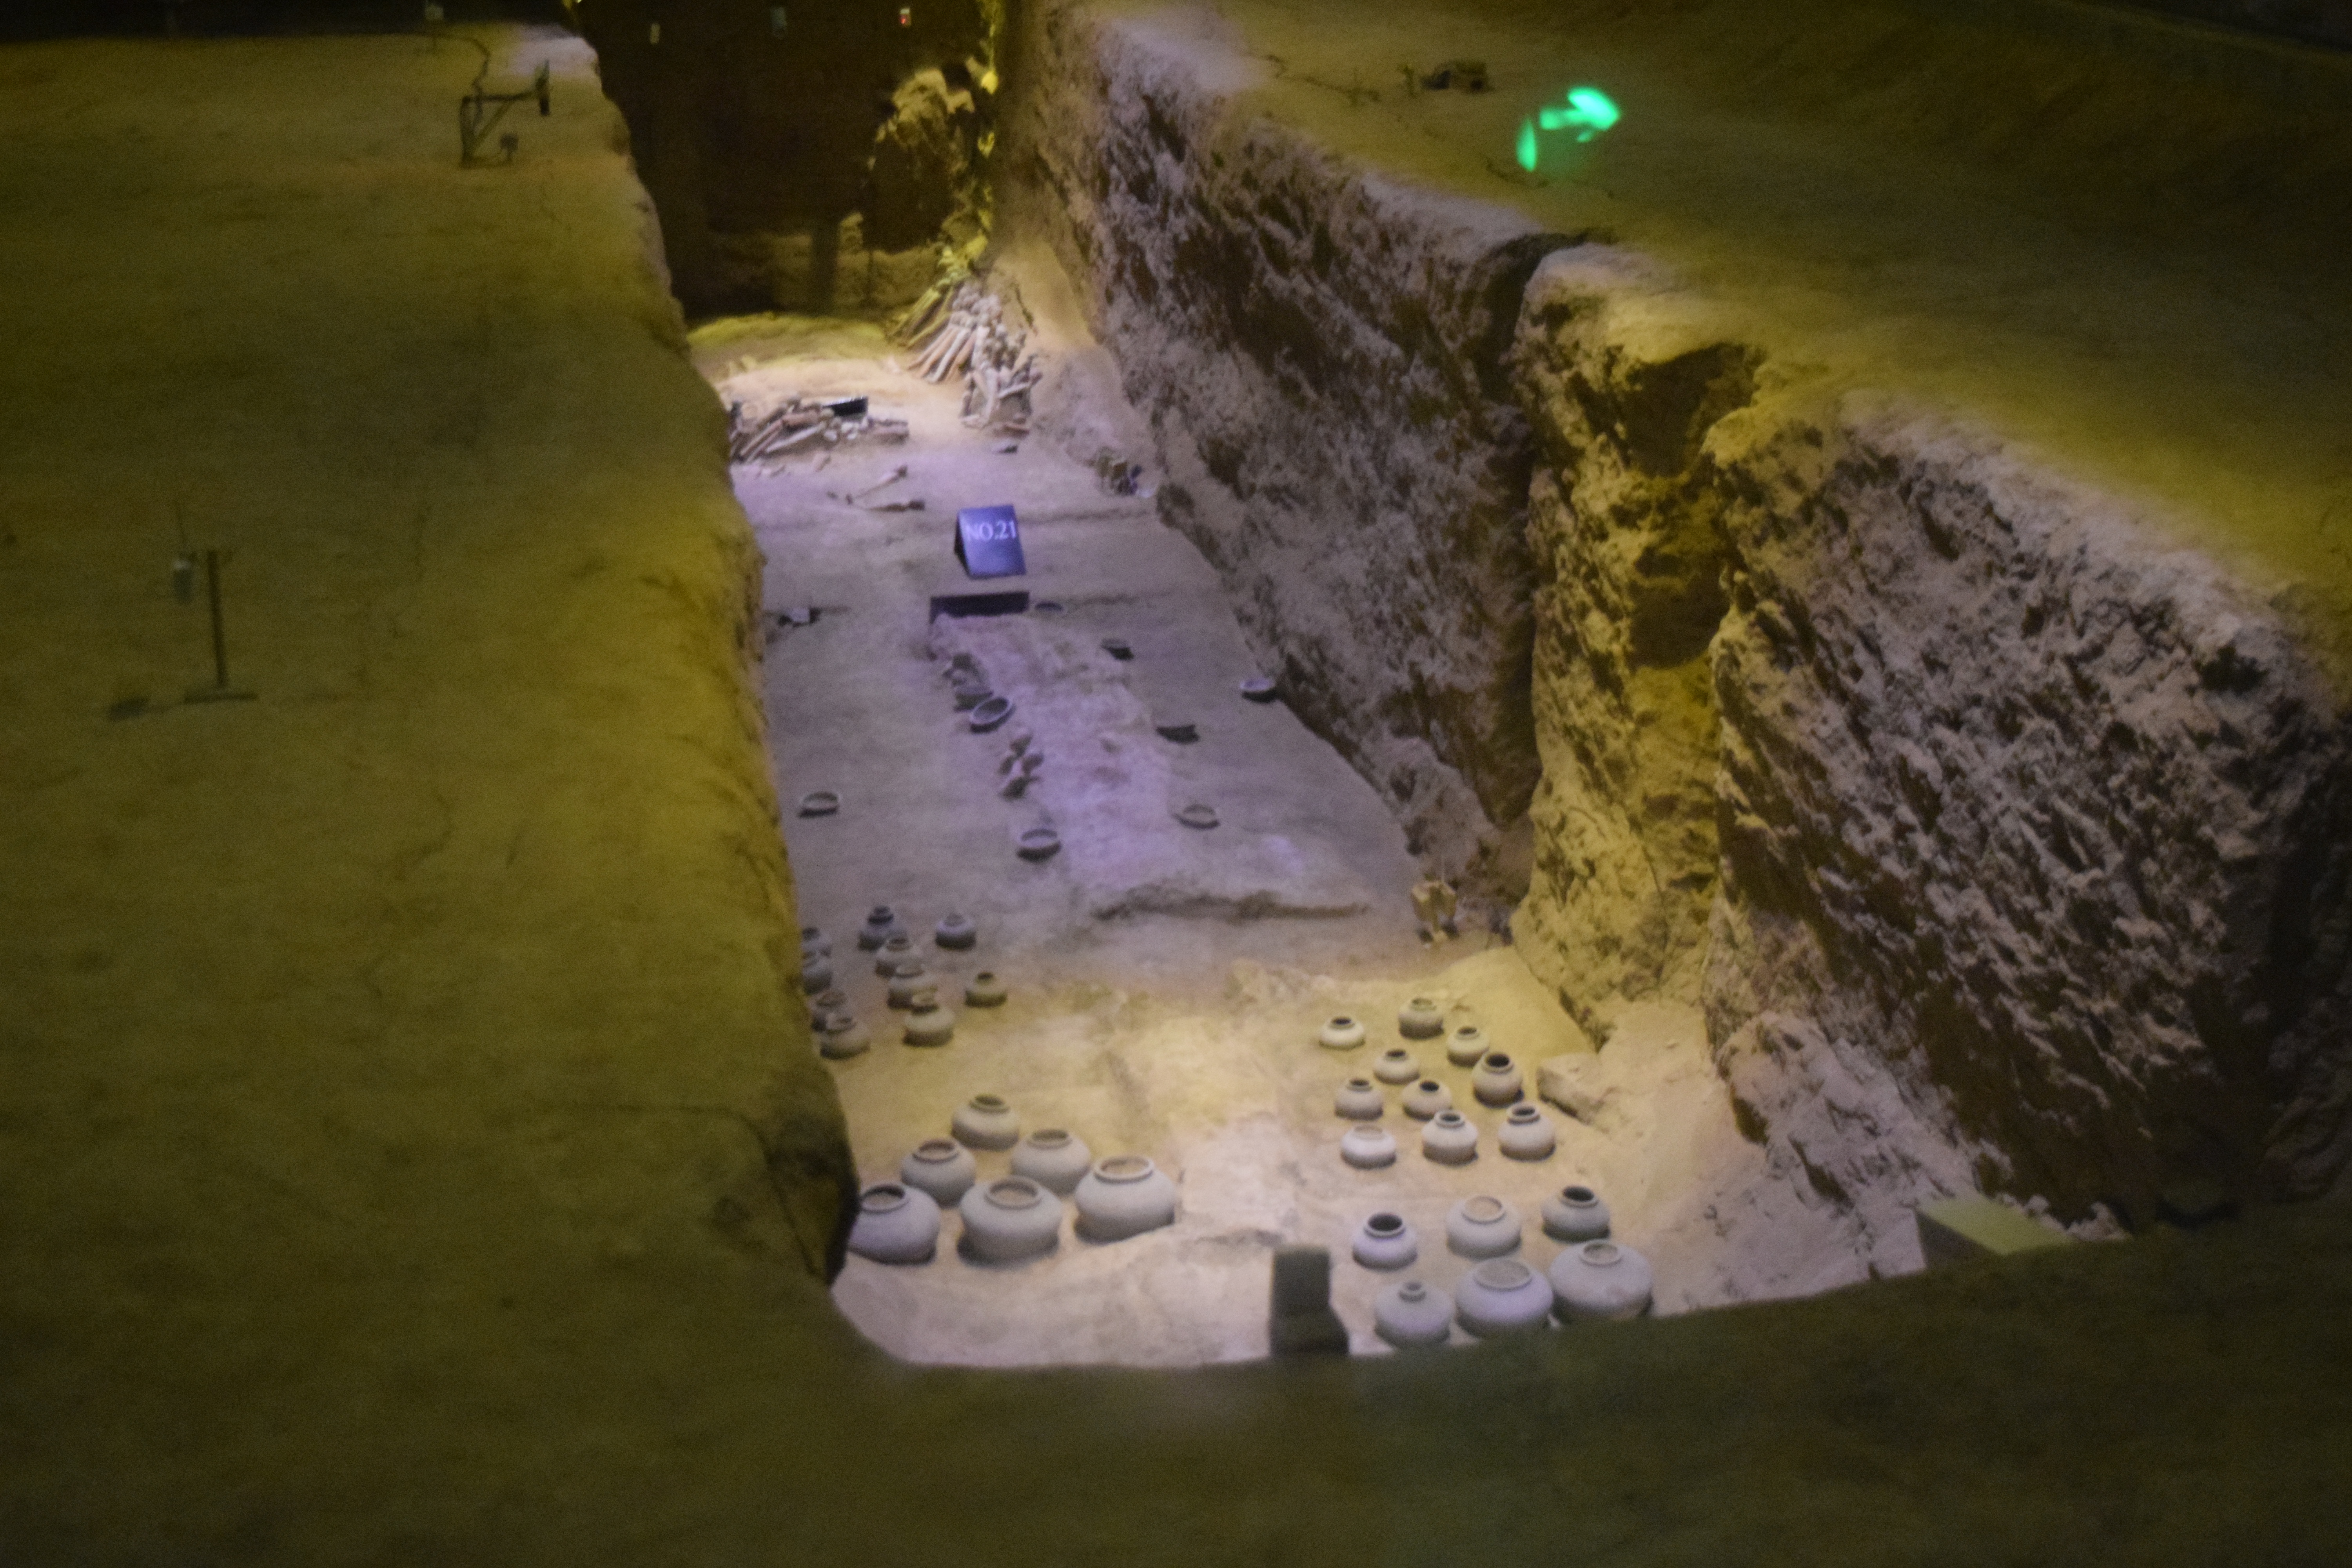 encased underground museum with state-of-the-art relic-protection technology that controls the temperature and humidity